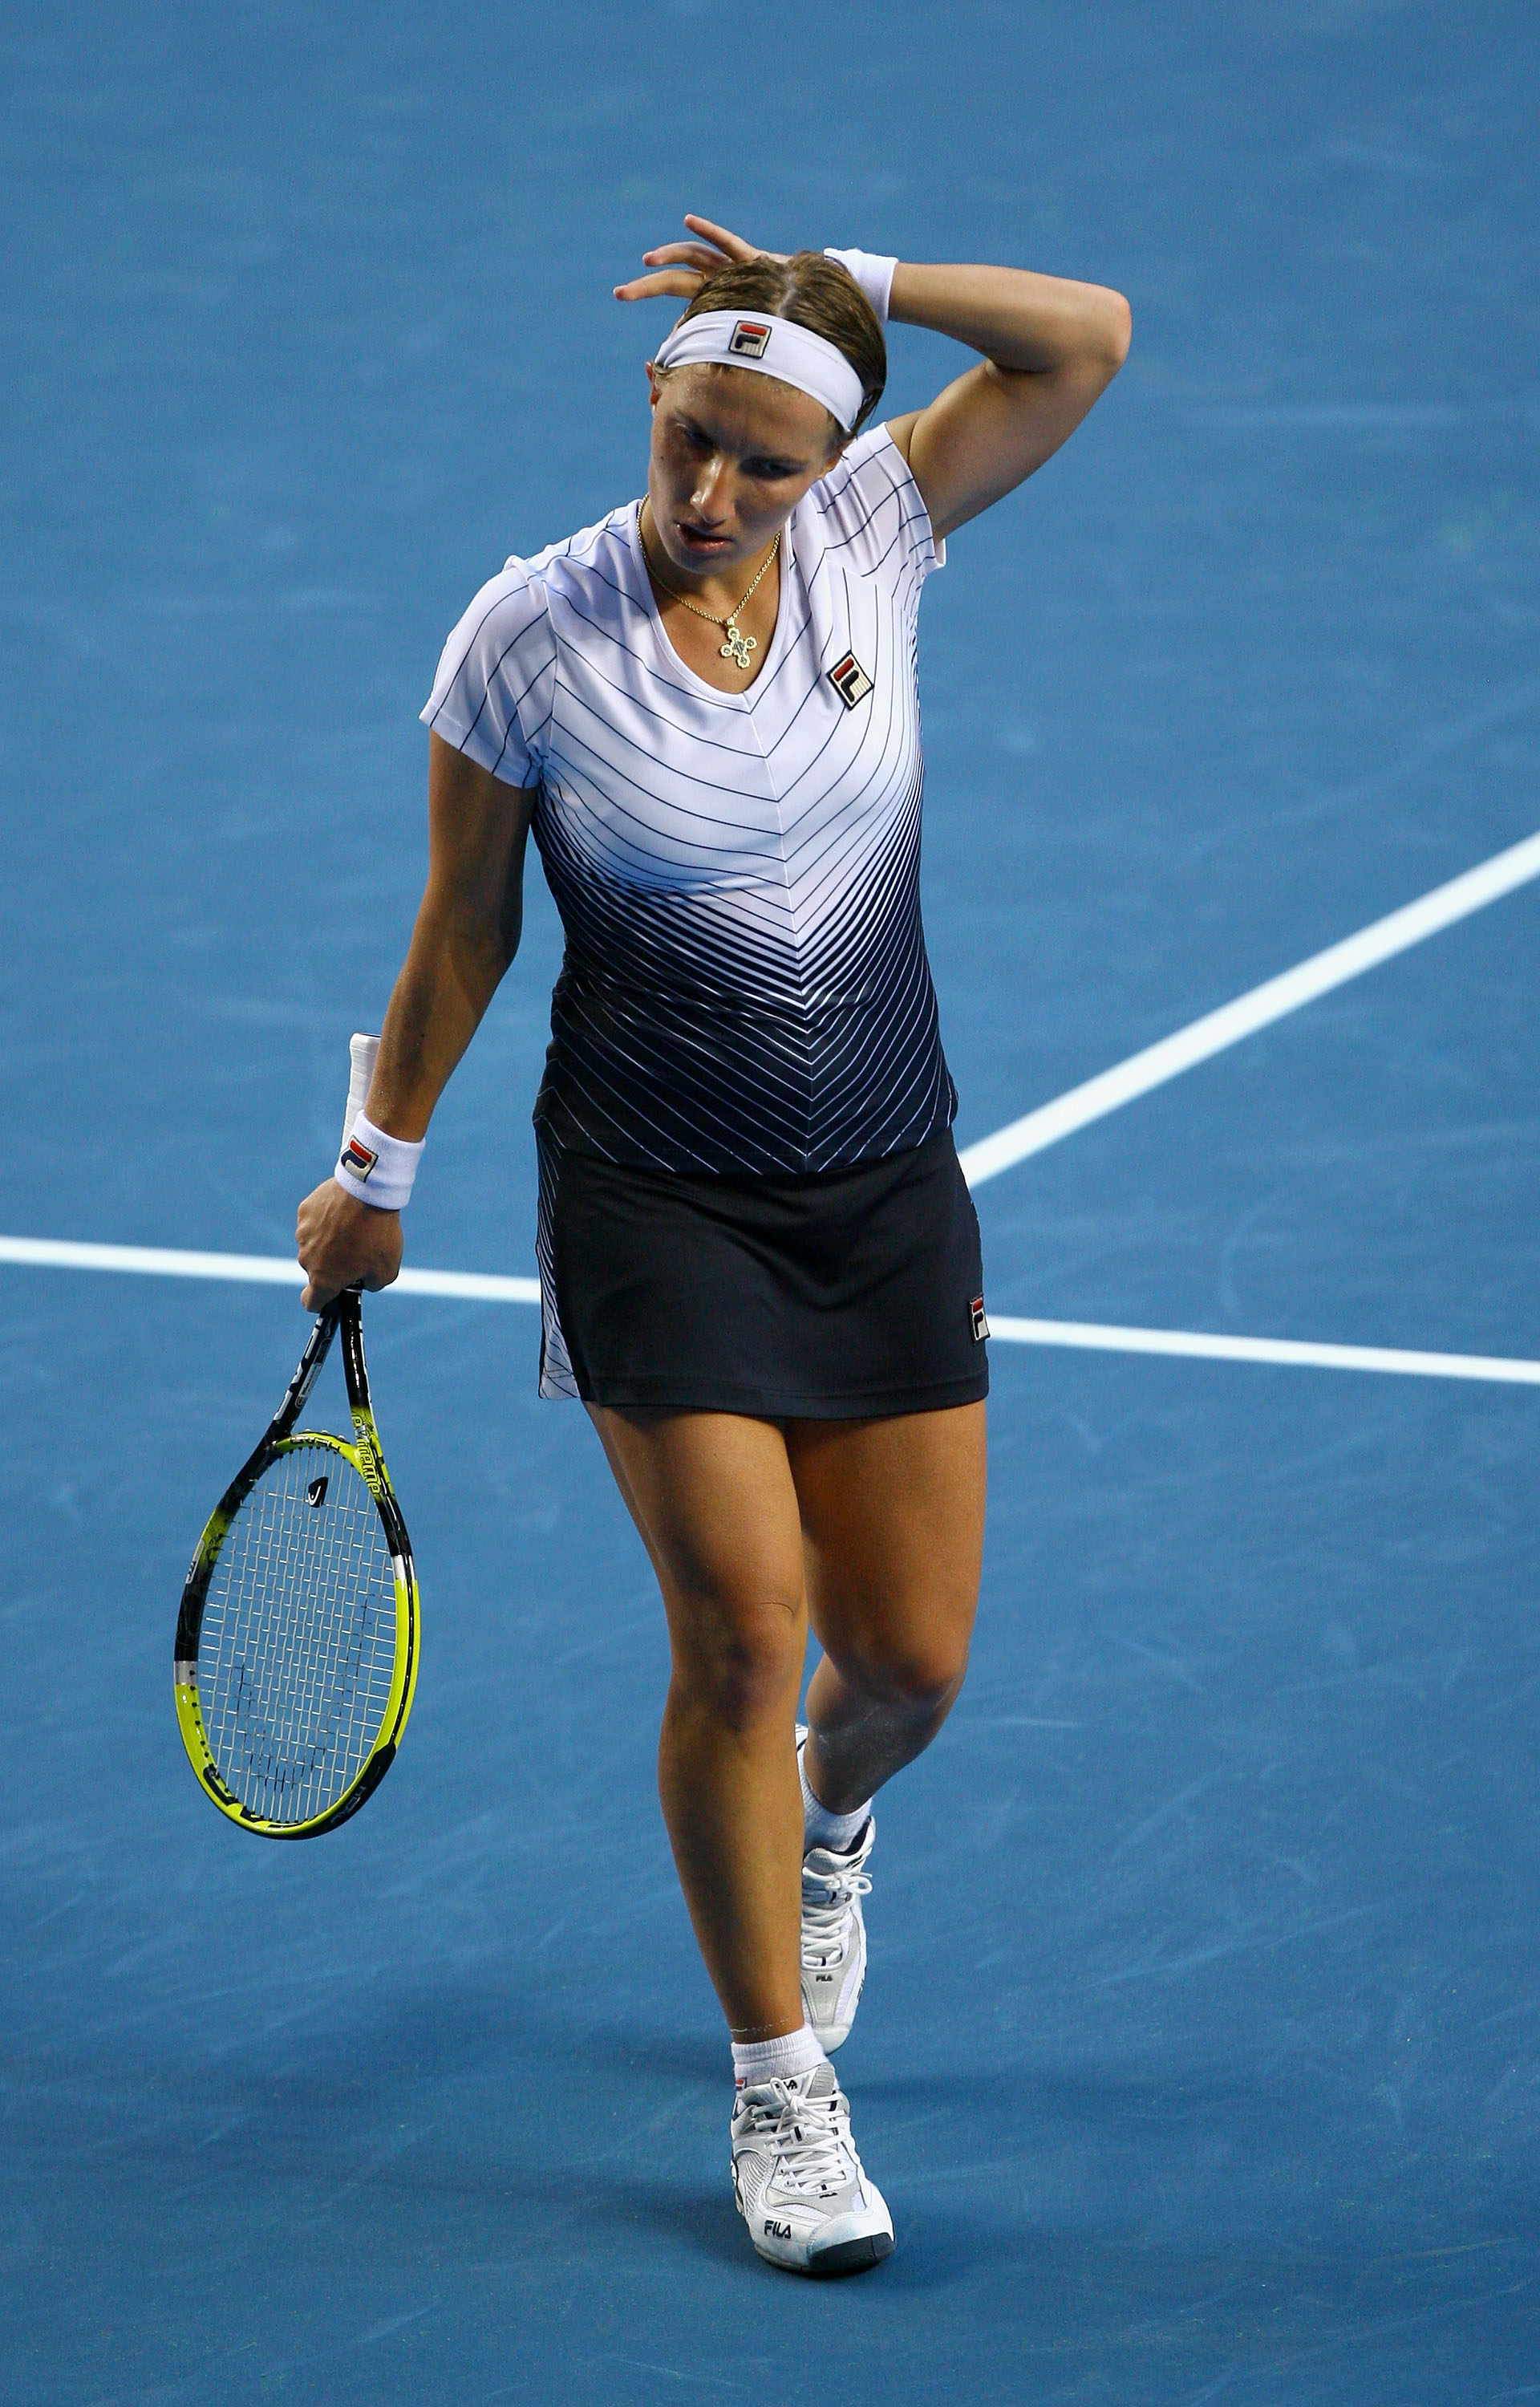 MELBOURNE, AUSTRALIA - JANUARY 23:  Svetlana Kuznetsova of Russia shows emotion after losing her fourth round match against Francesca Schiavone of Italy after a record 4 hours and 44 mins during day seven of the 2011 Australian Open at Melbourne Park on J